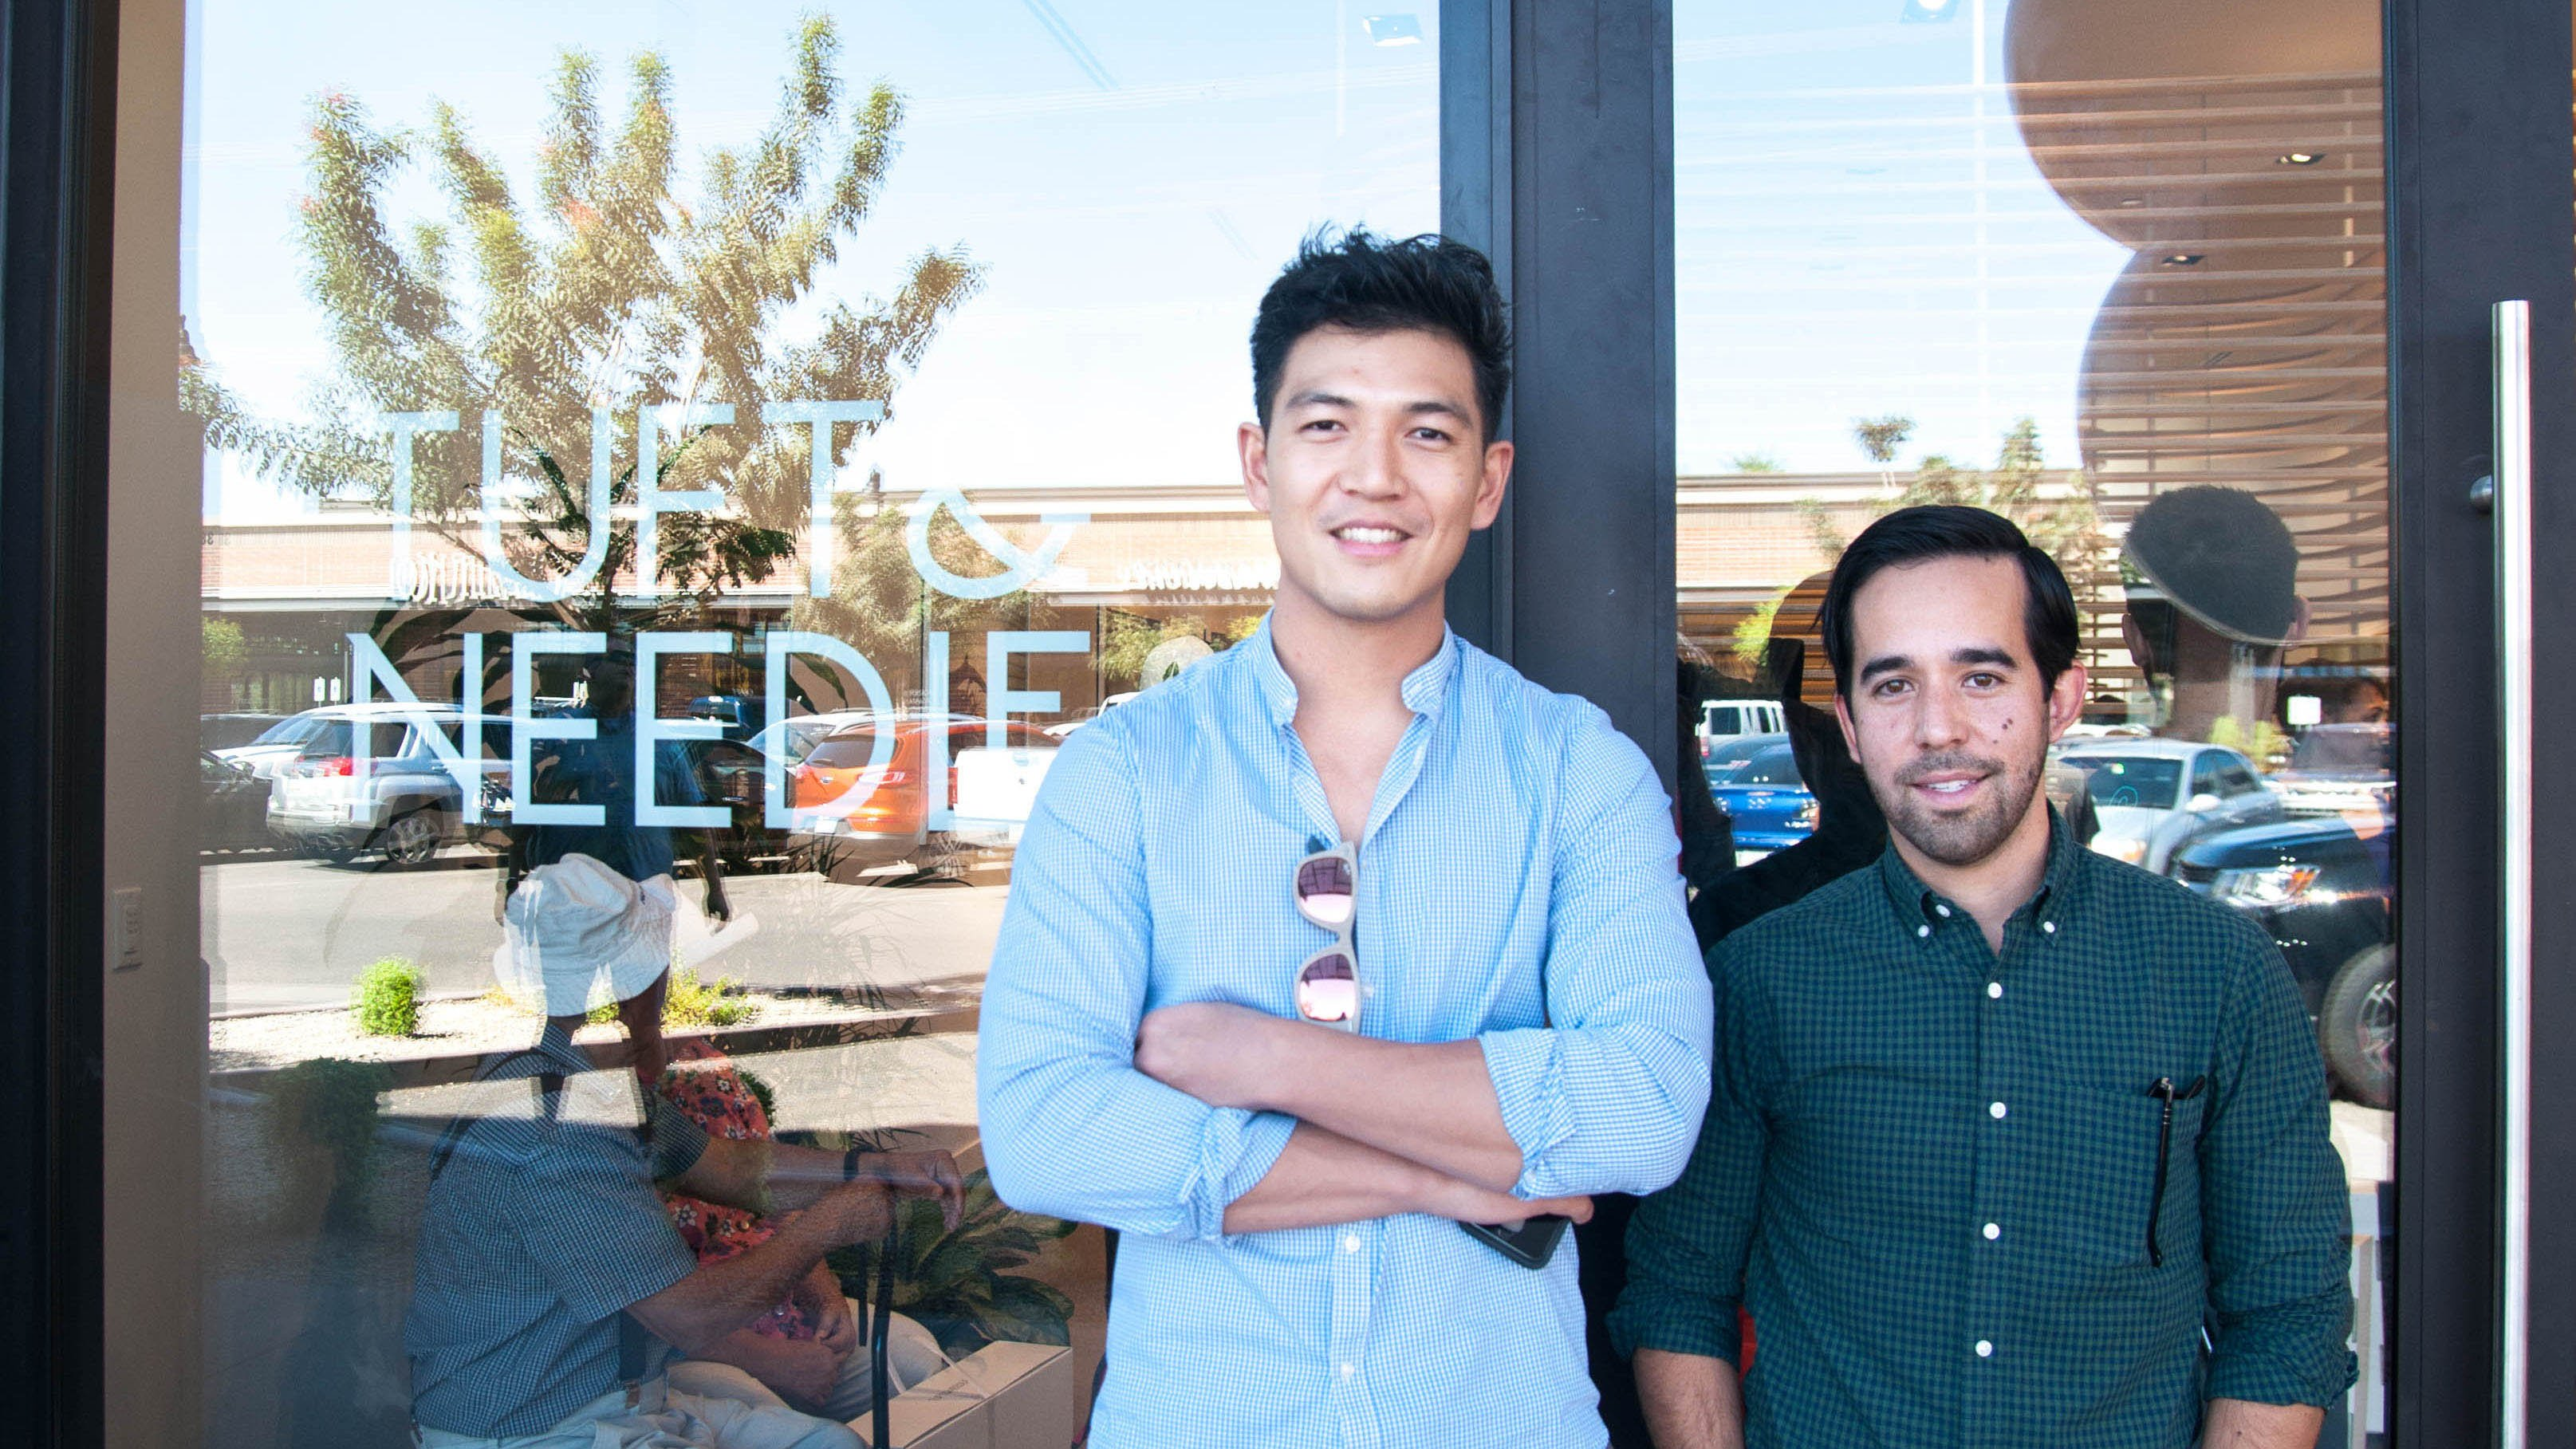 Tuft & Needle co-founder Daehee Park, left, with Chief Operations Officer Nicholas Arambula outside the Gilbert retail location of their company. (Photo by Ashley Ballard/Cronkite News)